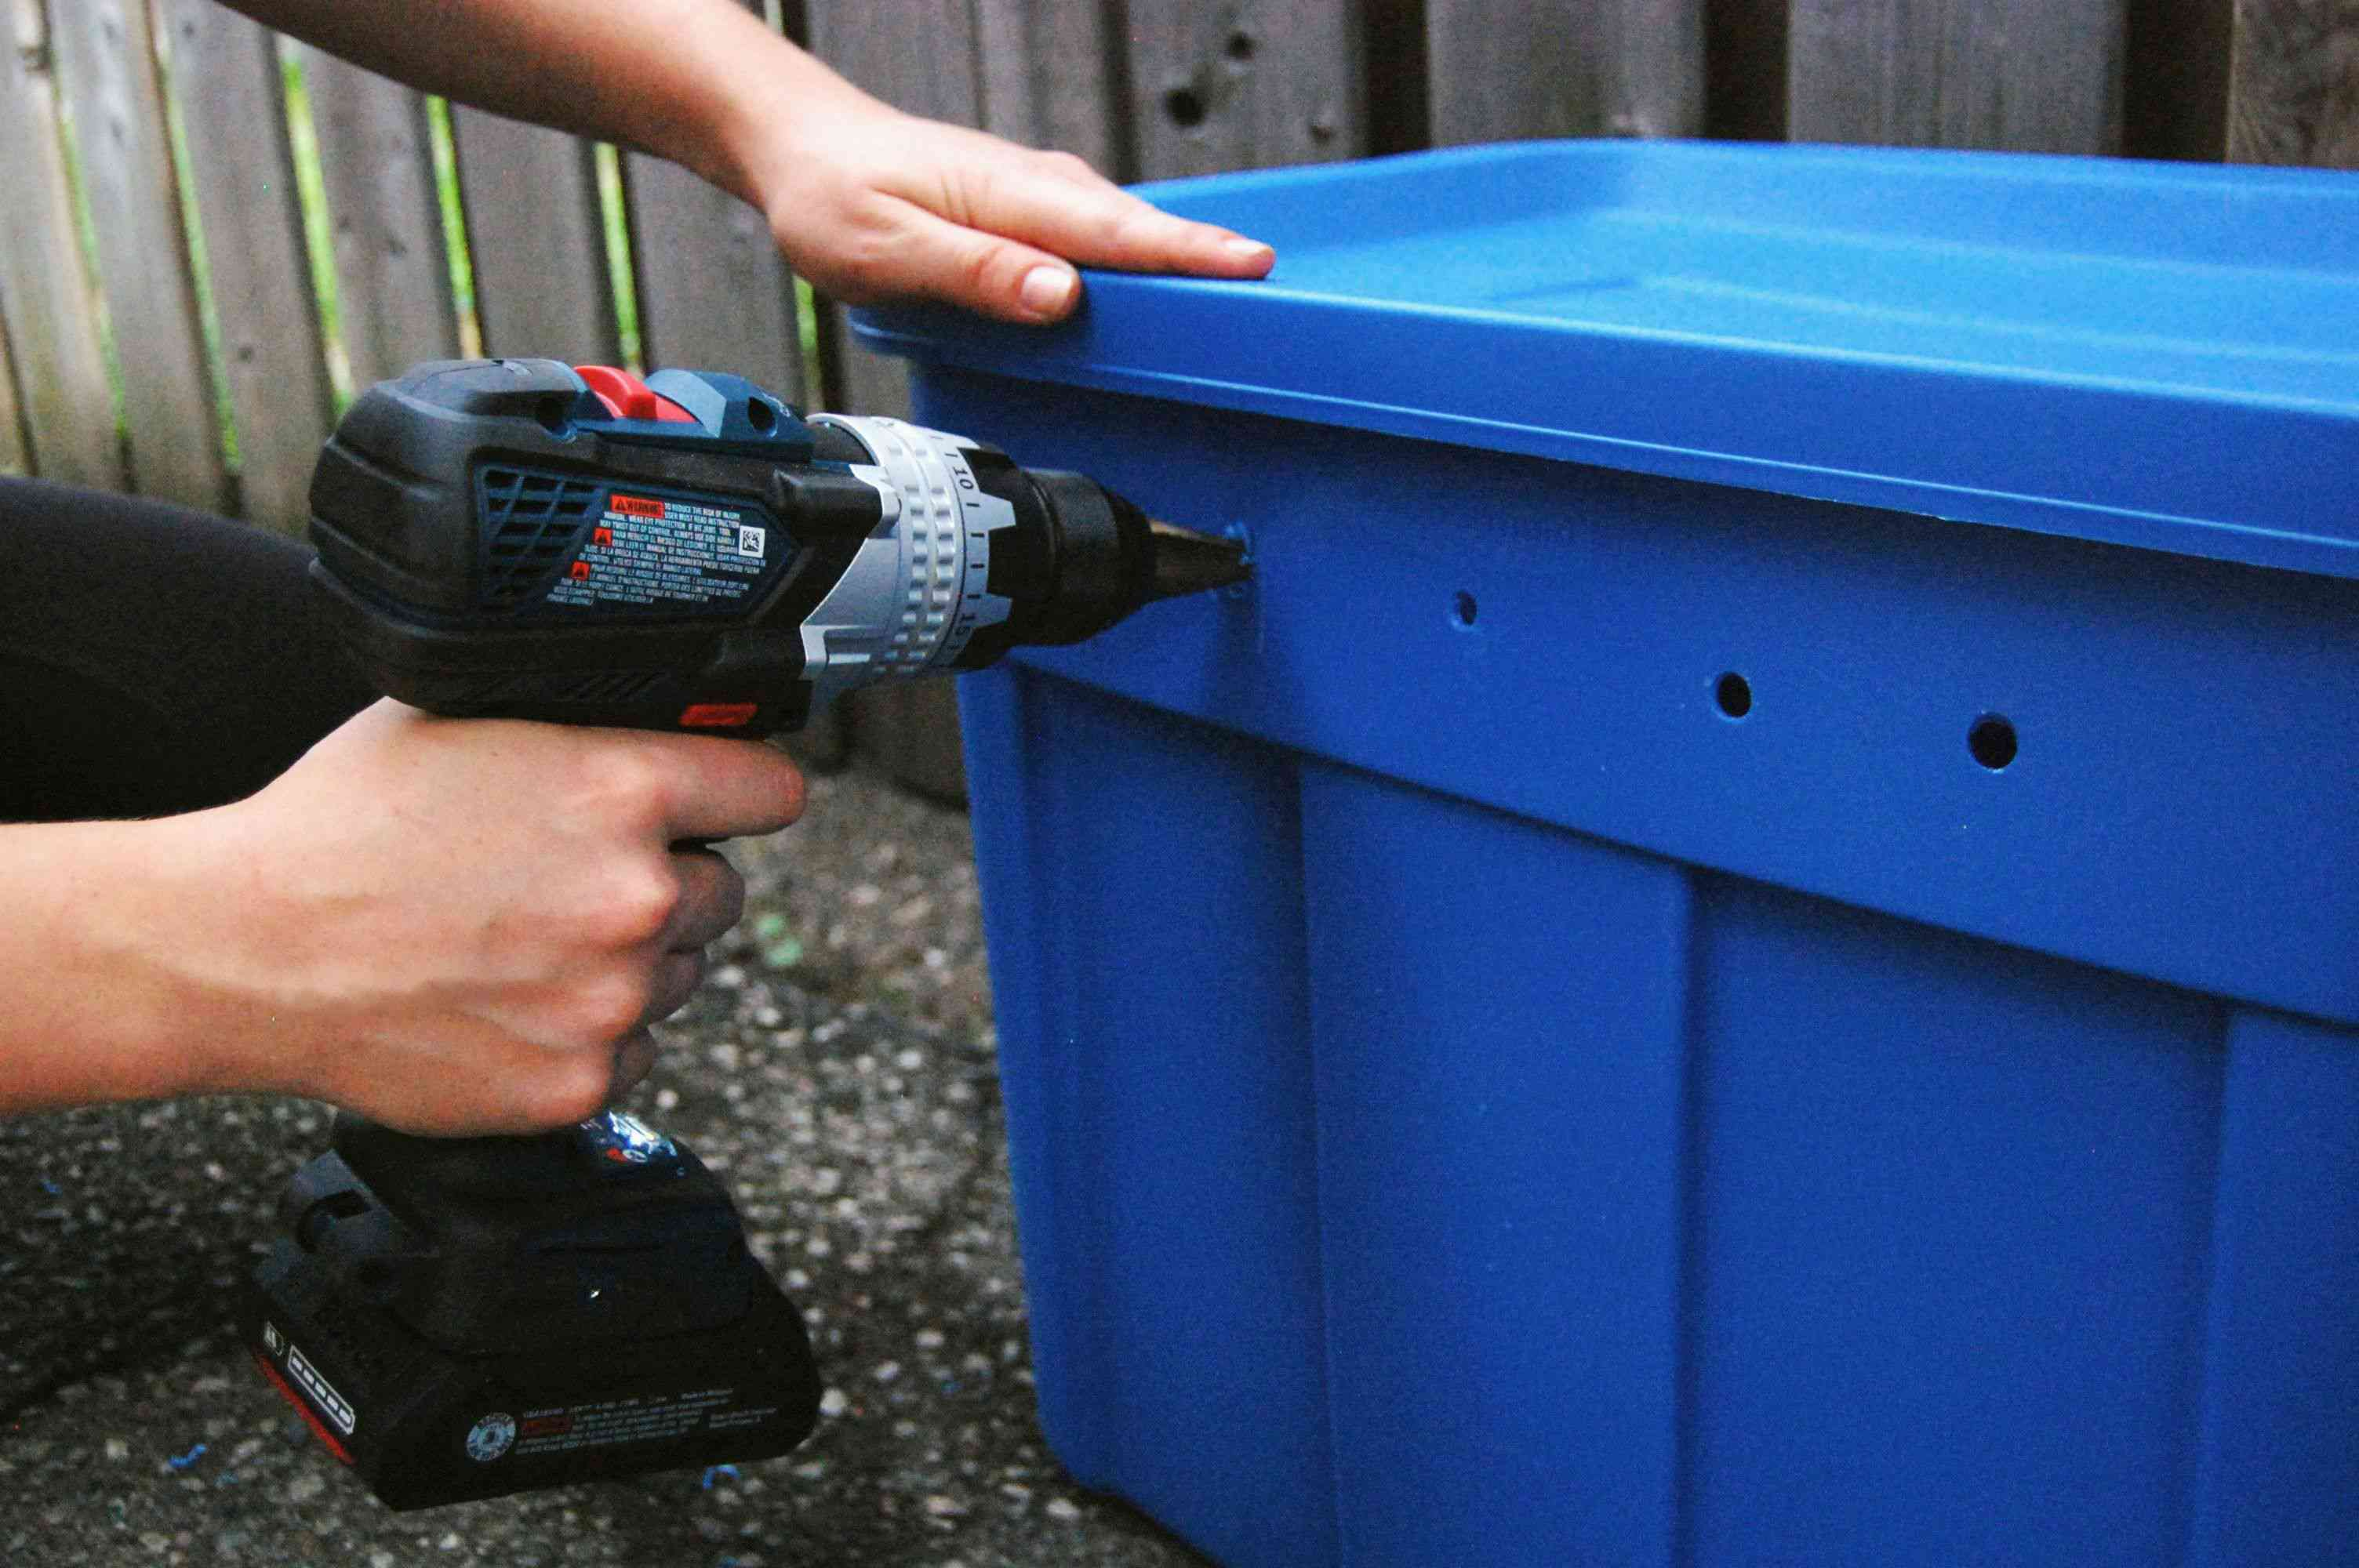 Drilling holes in the sides of the bin